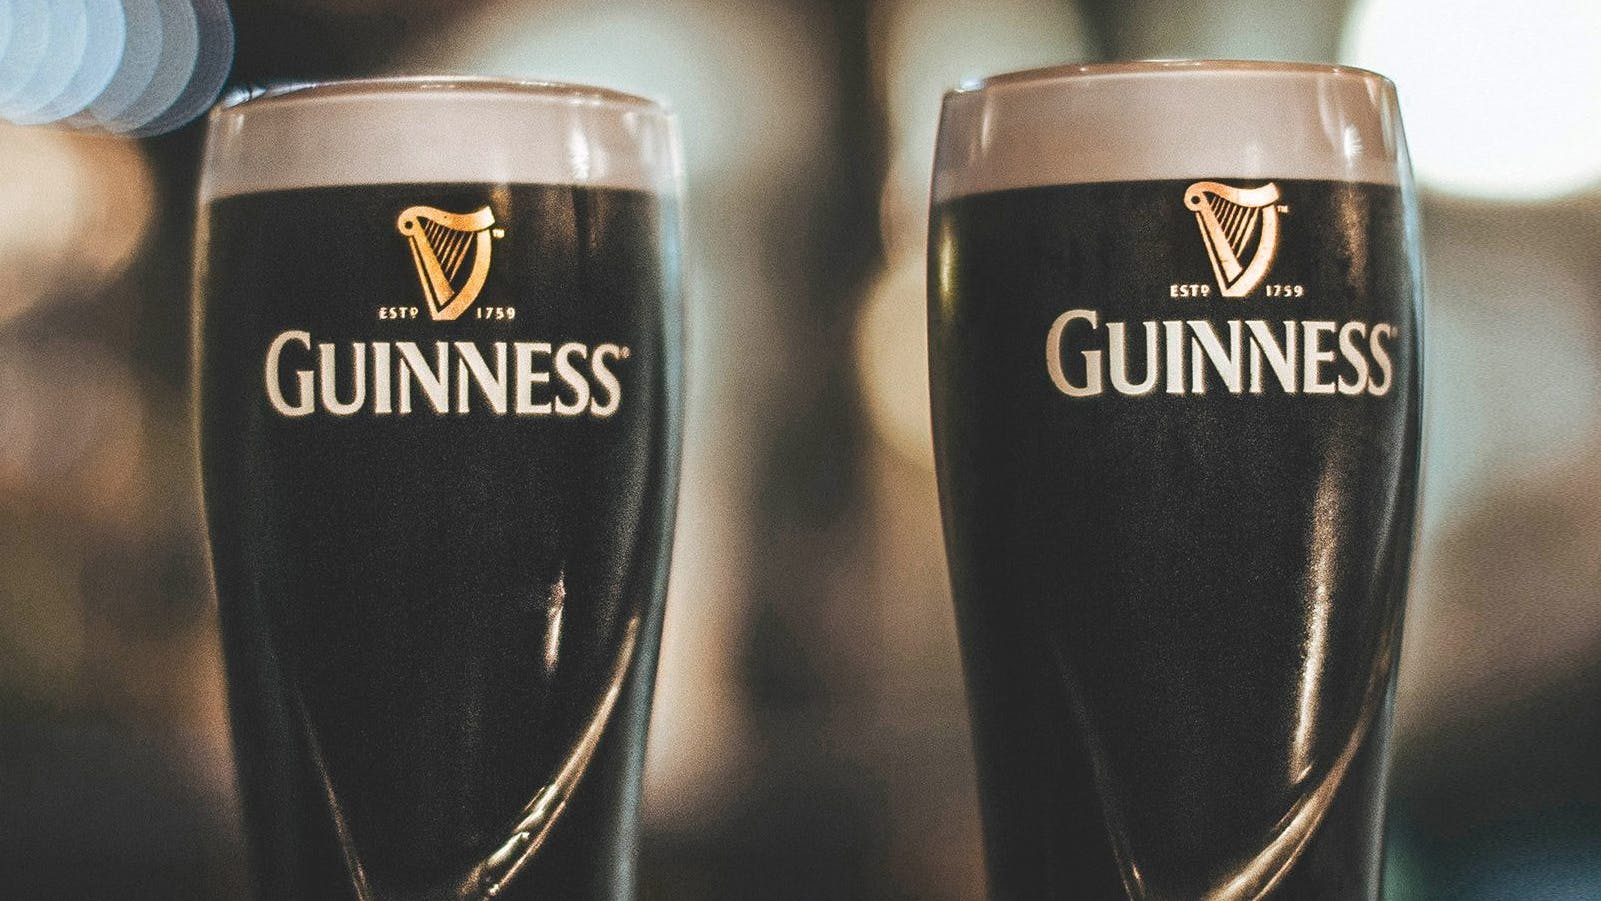 ST PATRICK'S DAY KNEES-UP